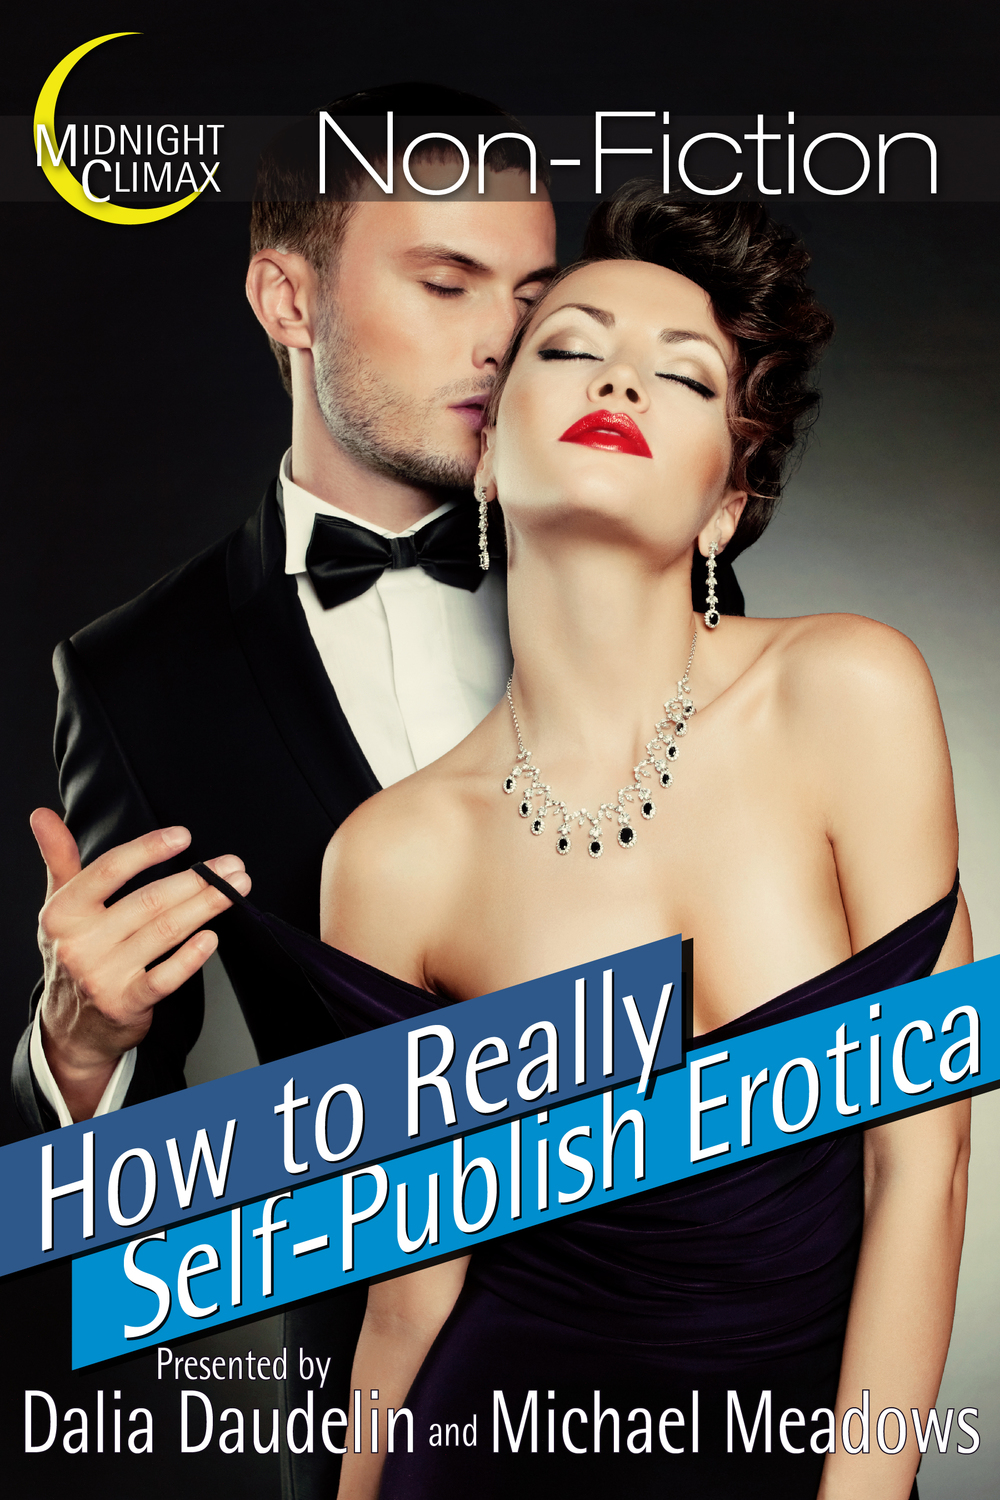 How to Really Self-Publish Erotica